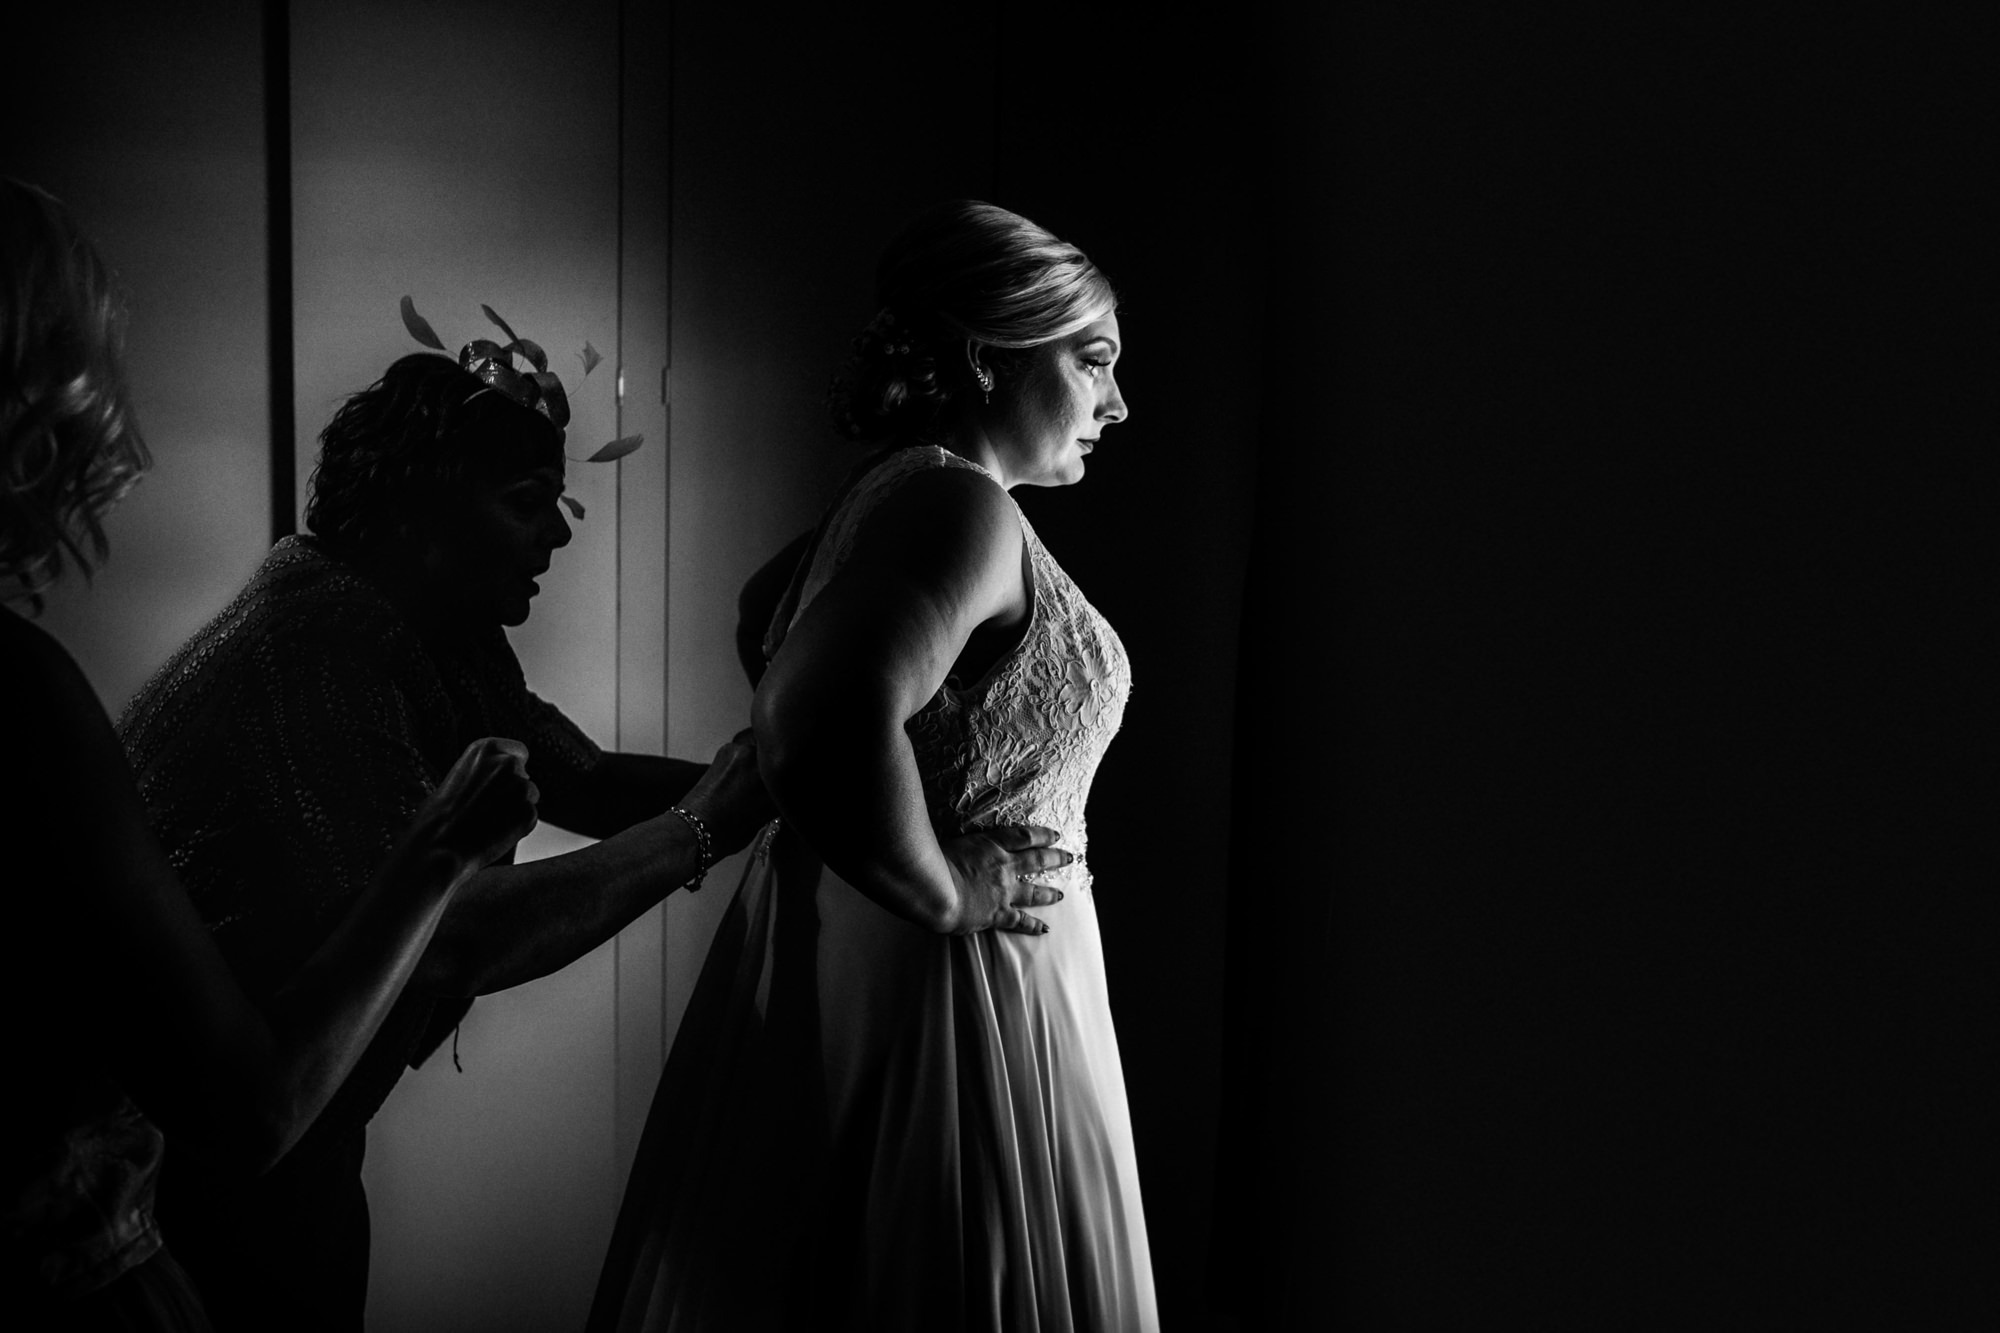 bride in nice light being helped into wedding dress, black and white image